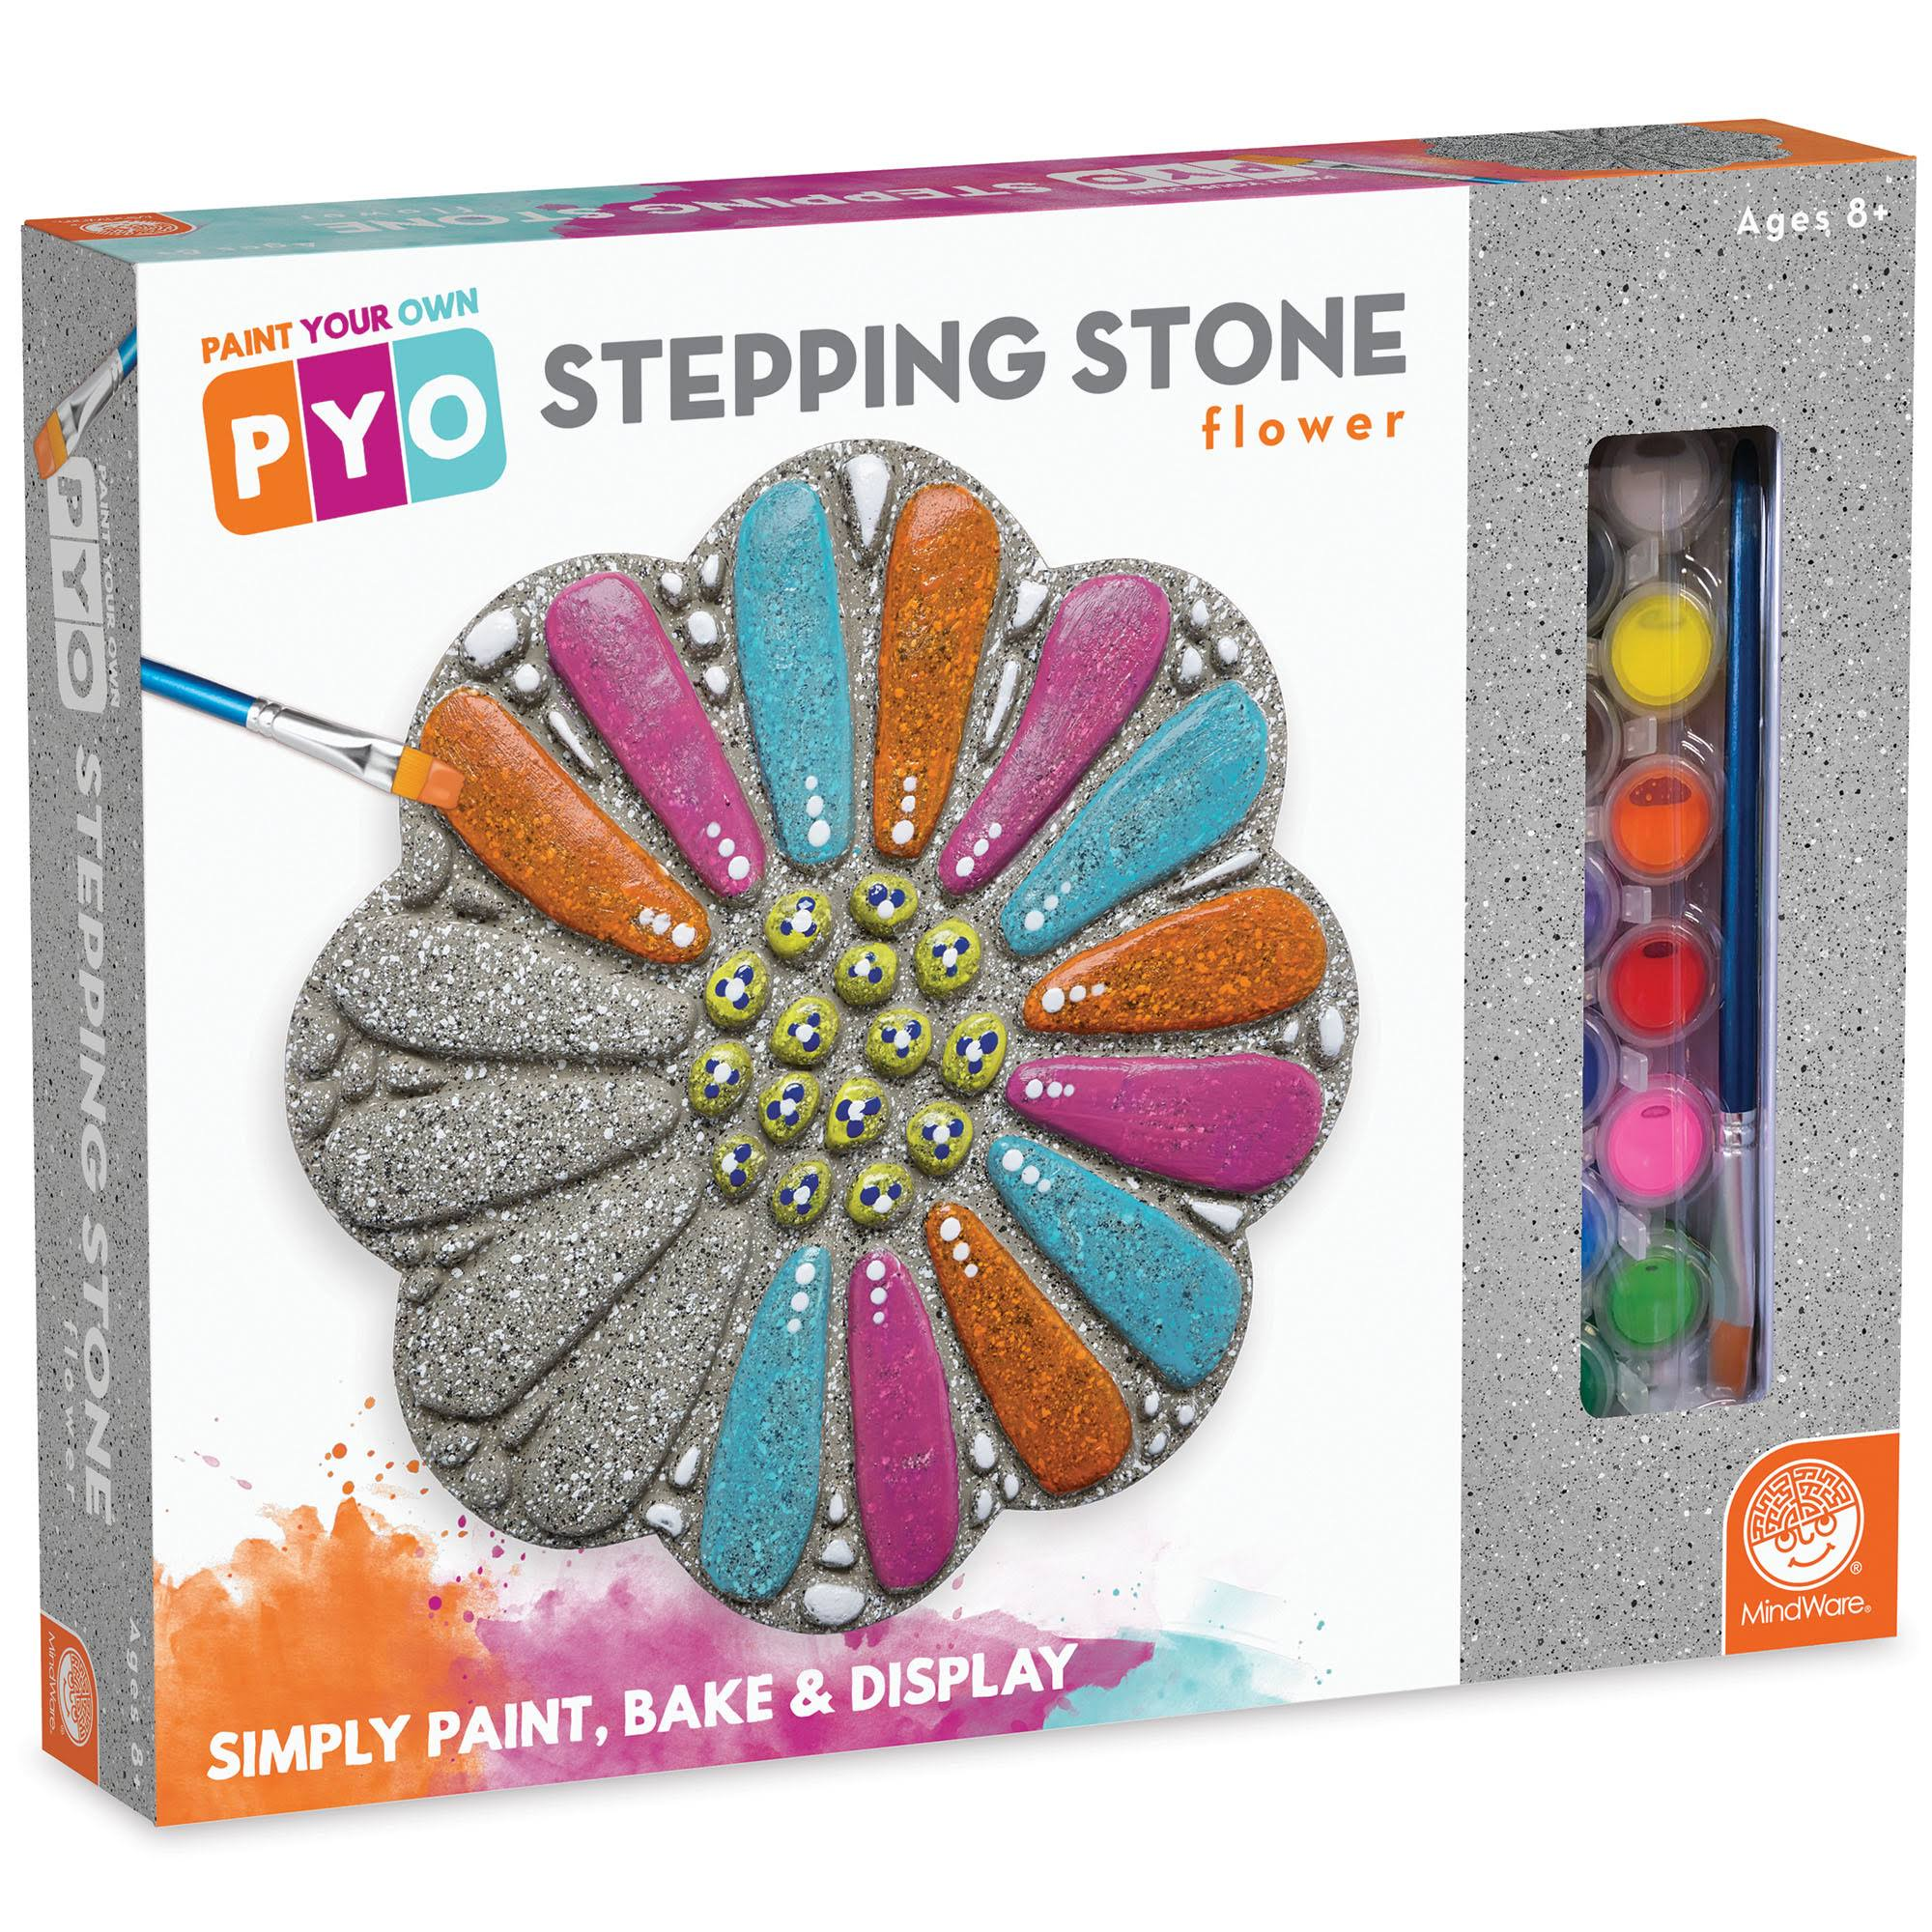 MindWare Paint Your Own Stepping Stone Flower